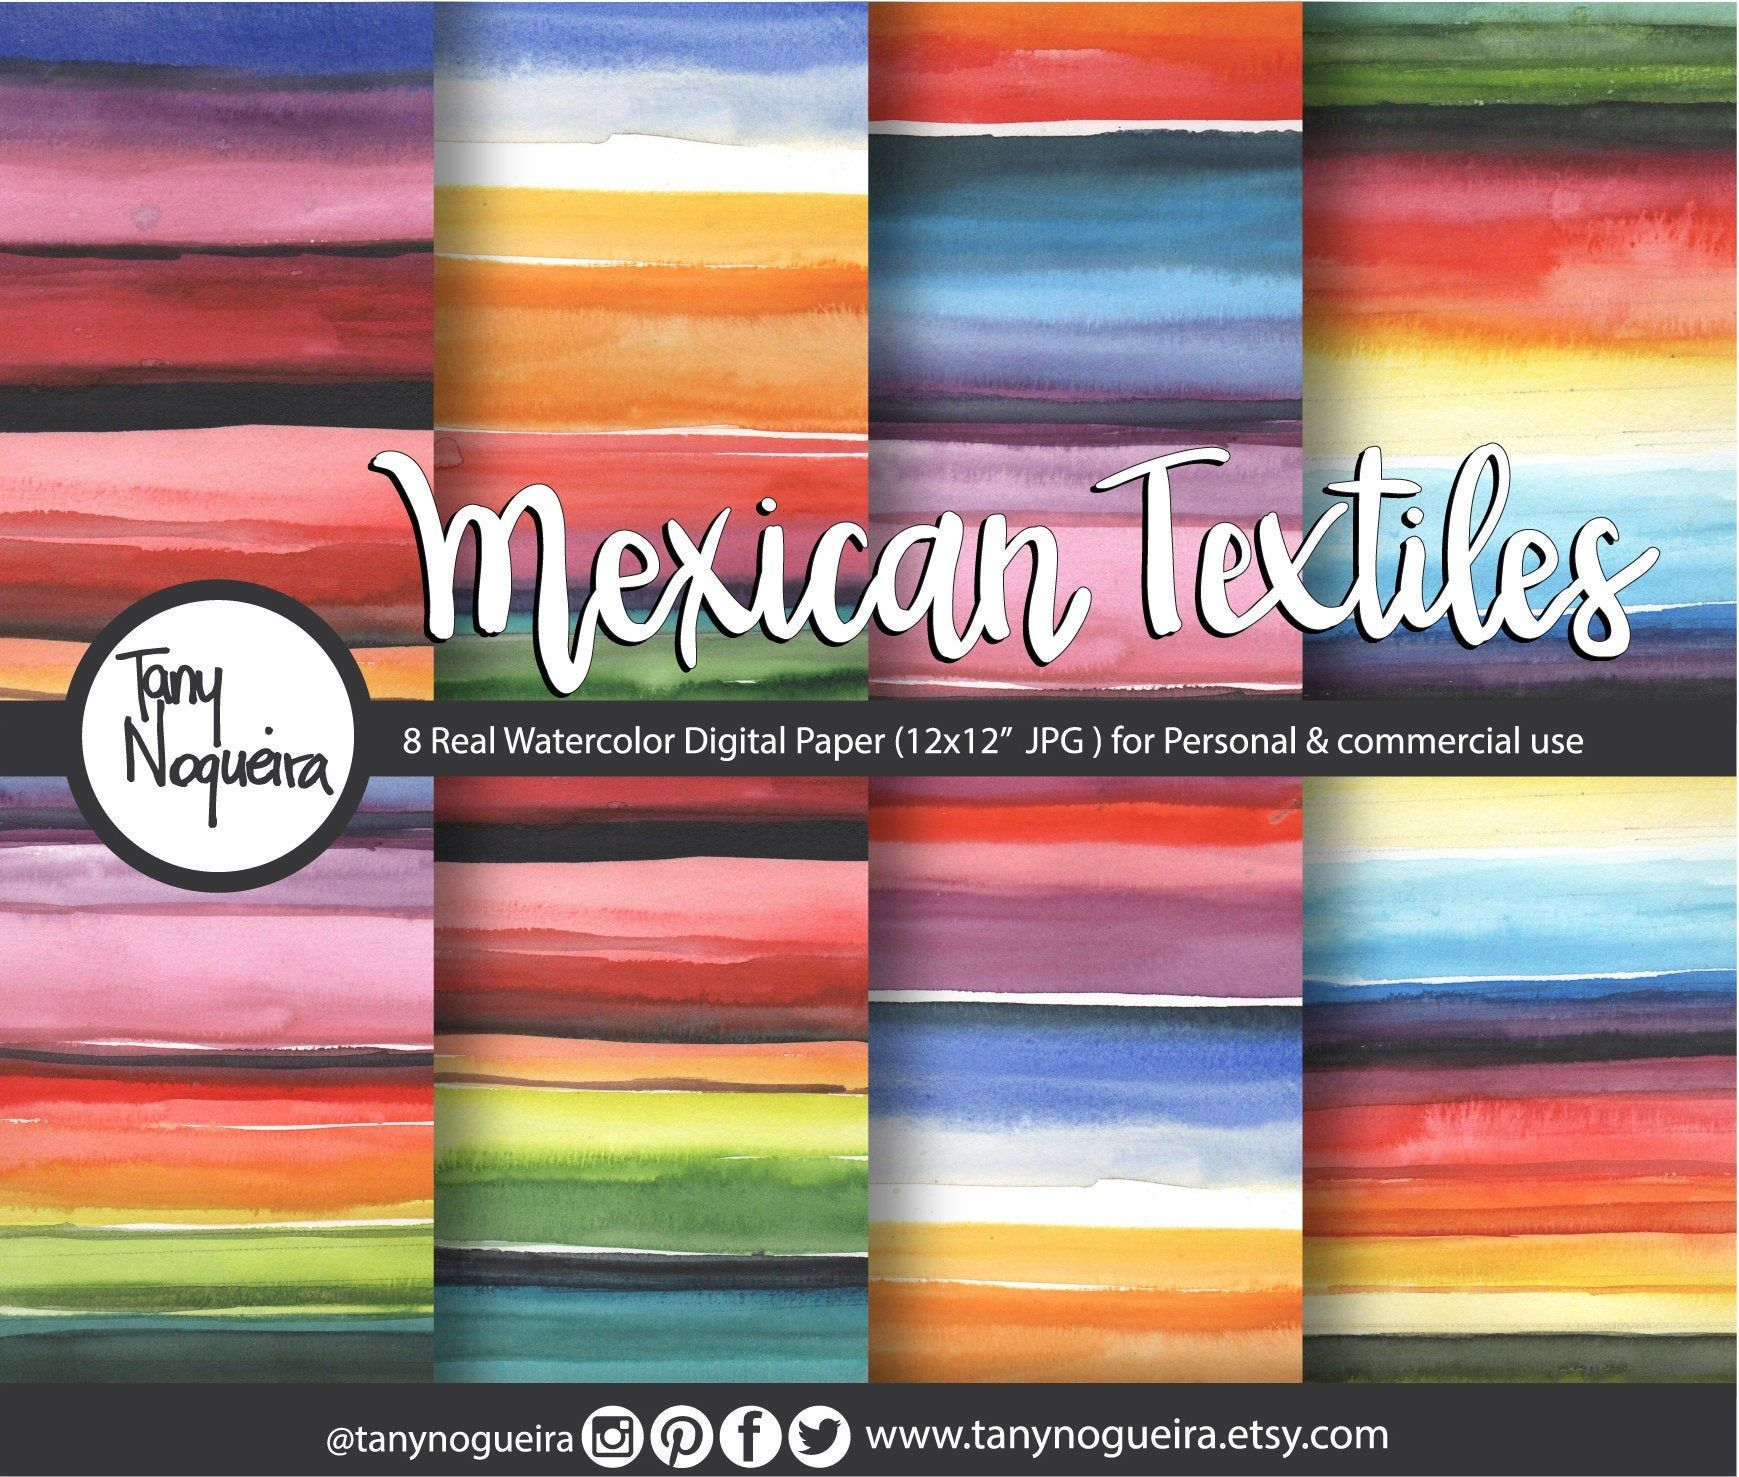 Mexican Textiles Watercolor Digital Paper, Backgrounds, Patterns, textures, for invites, cinco de mayo, events, mexican wedding, wall art